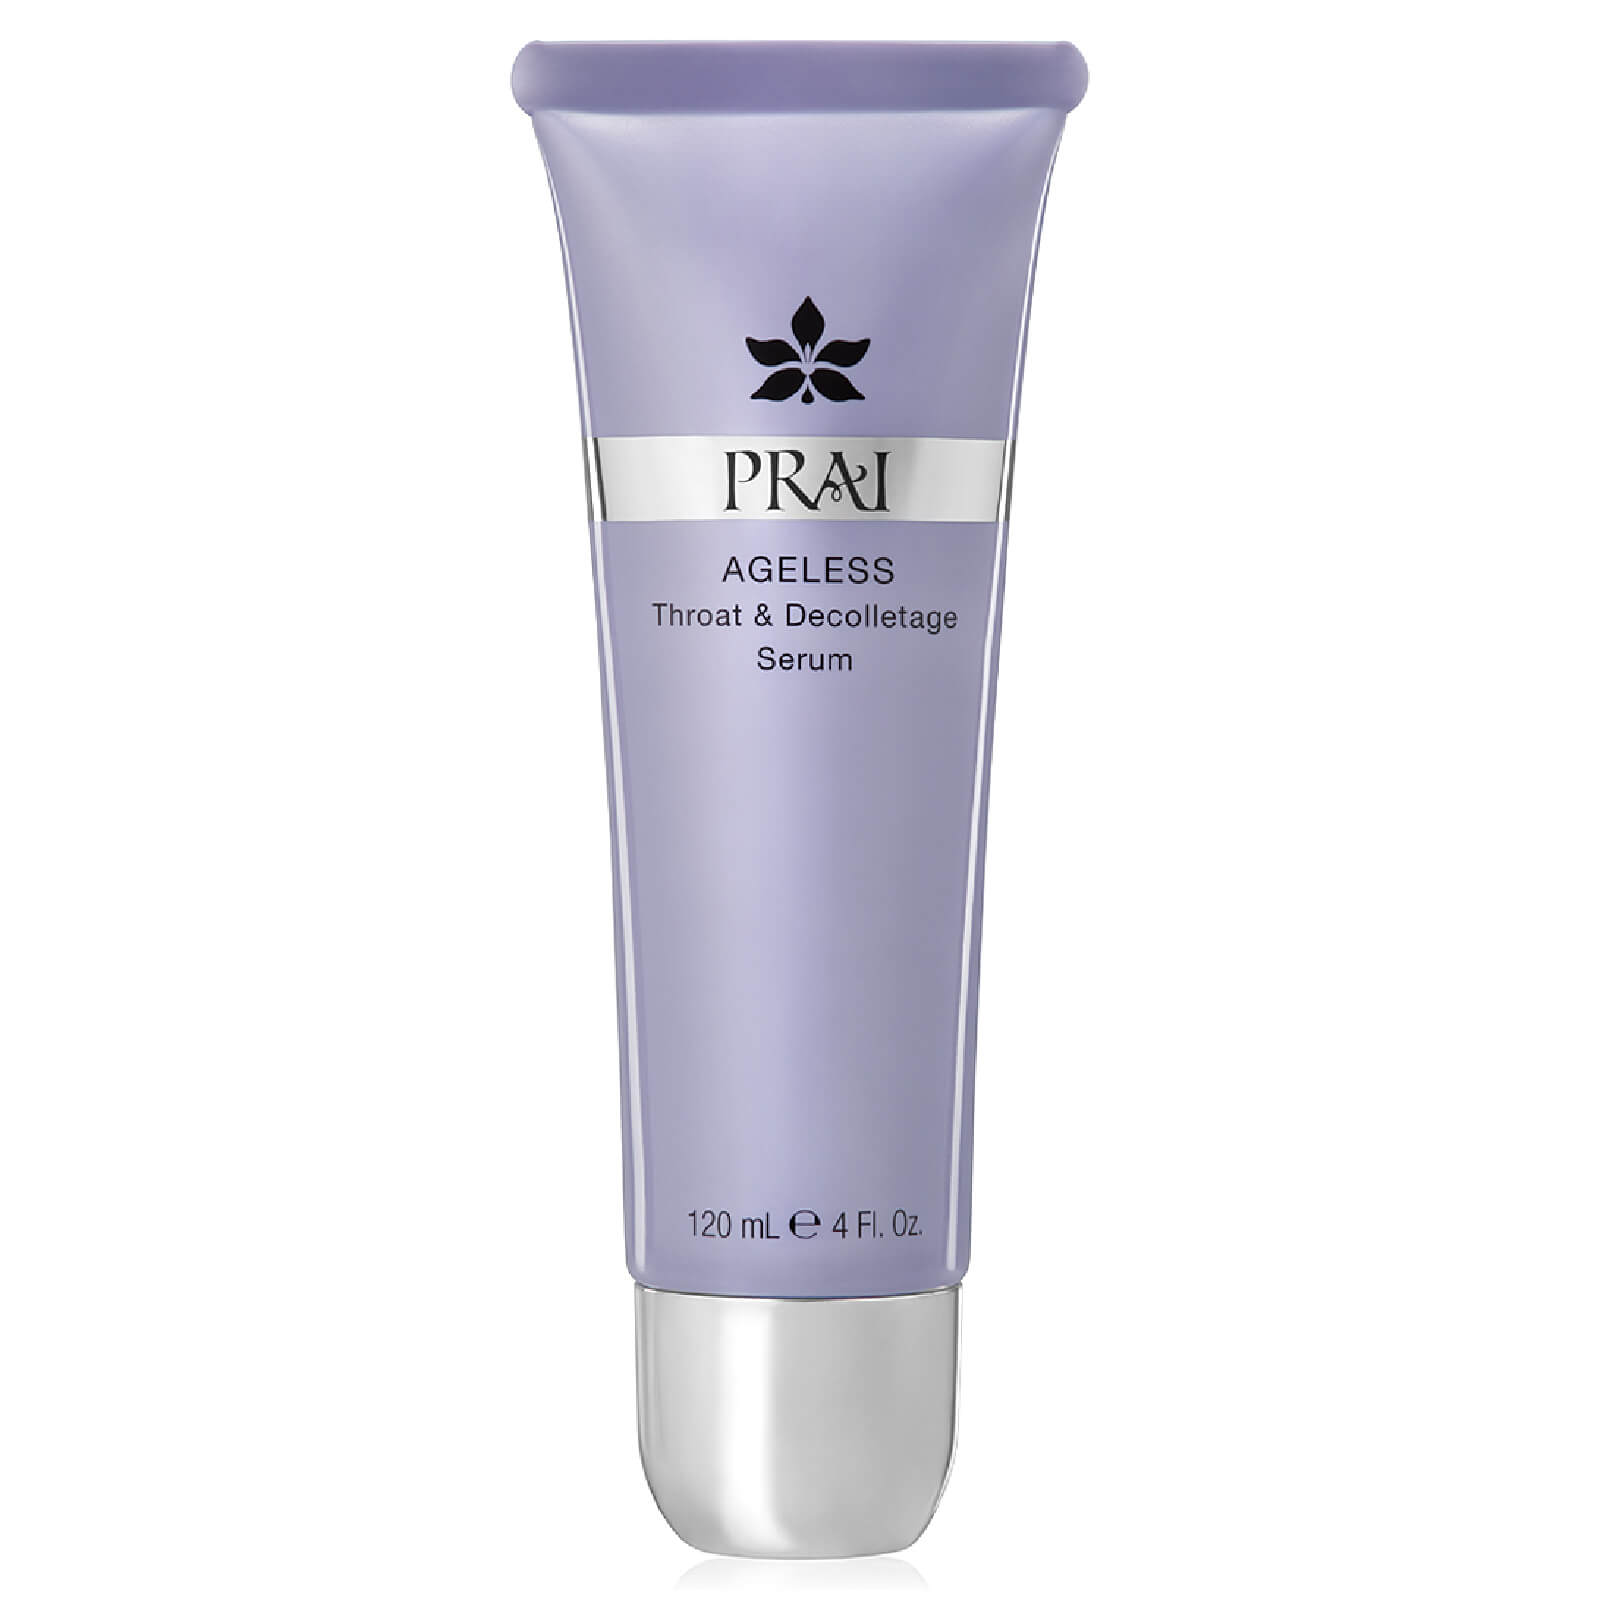 PRAI AGELESS Throat & Decolletage Serum 4oz